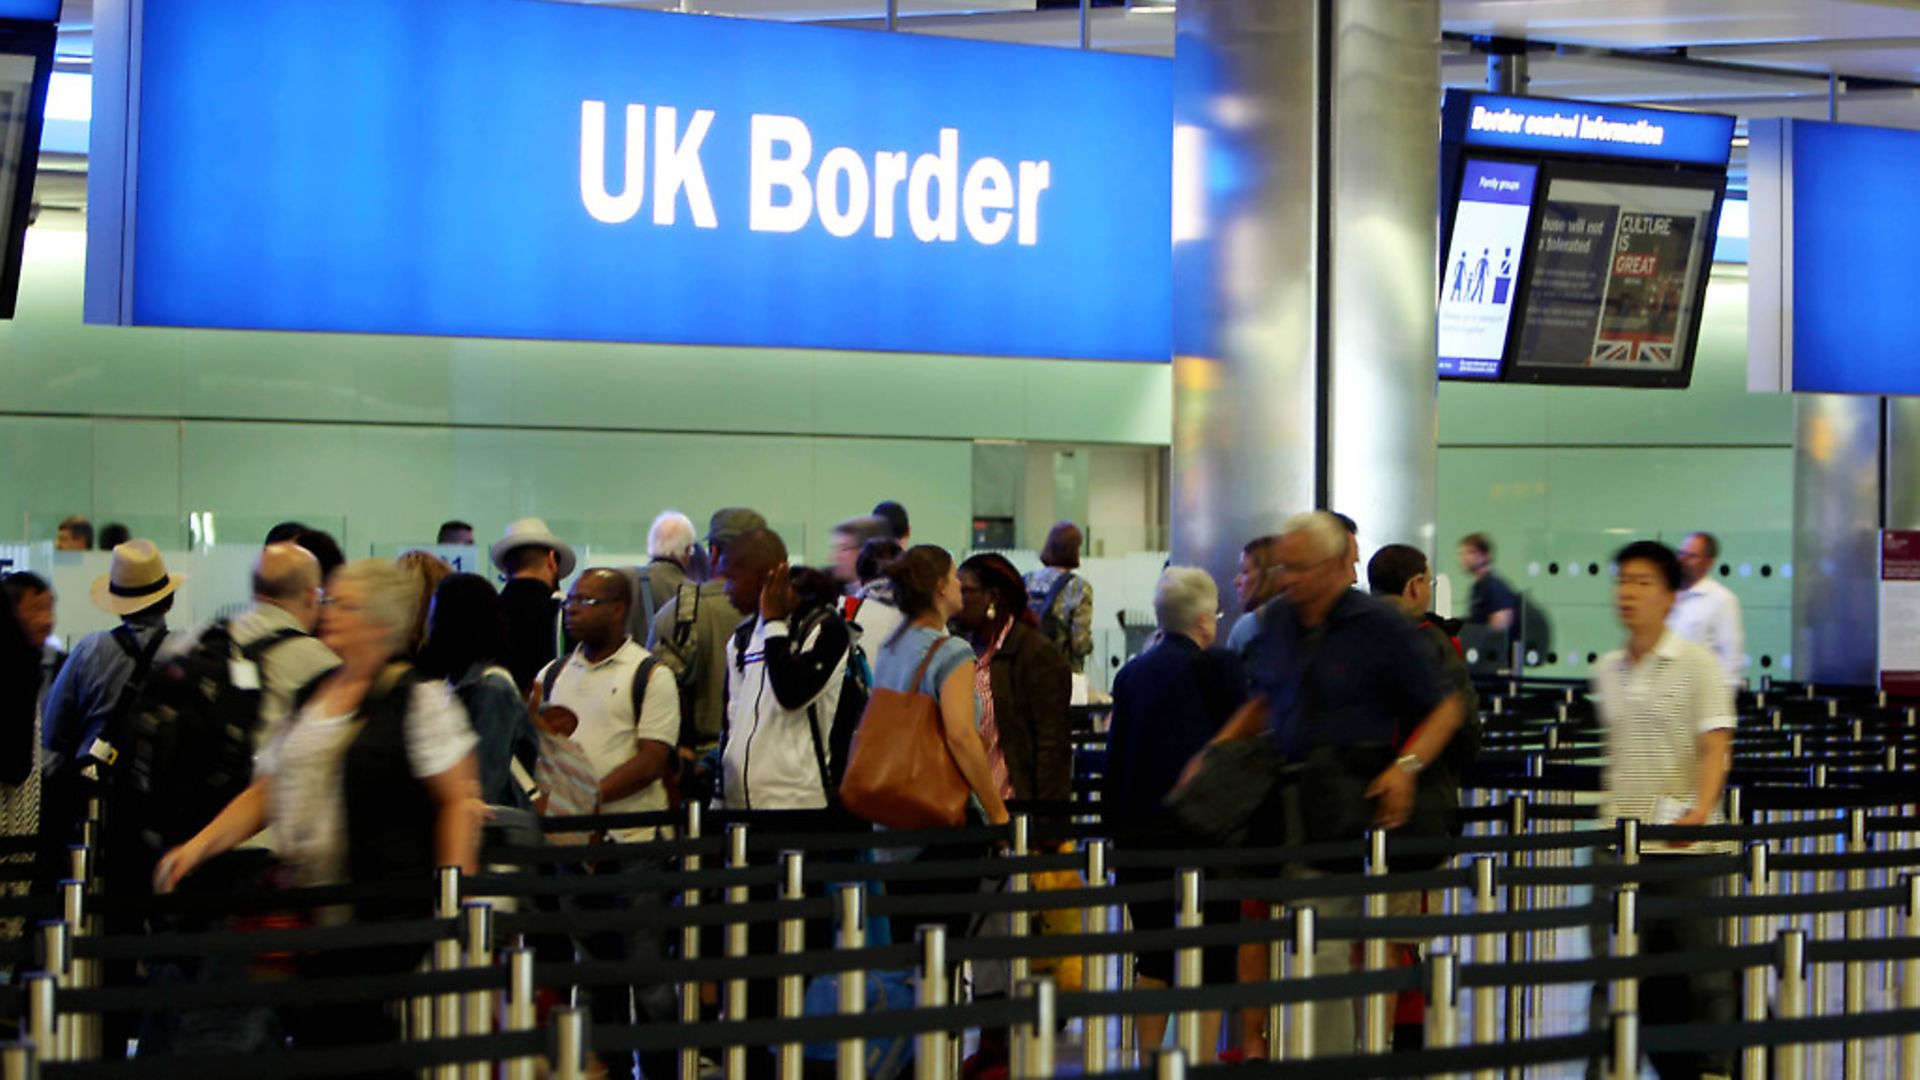 Border control at Heathrow Airport. Photograph: Steve Parsons/PA. - Credit: PA Archive/PA Images